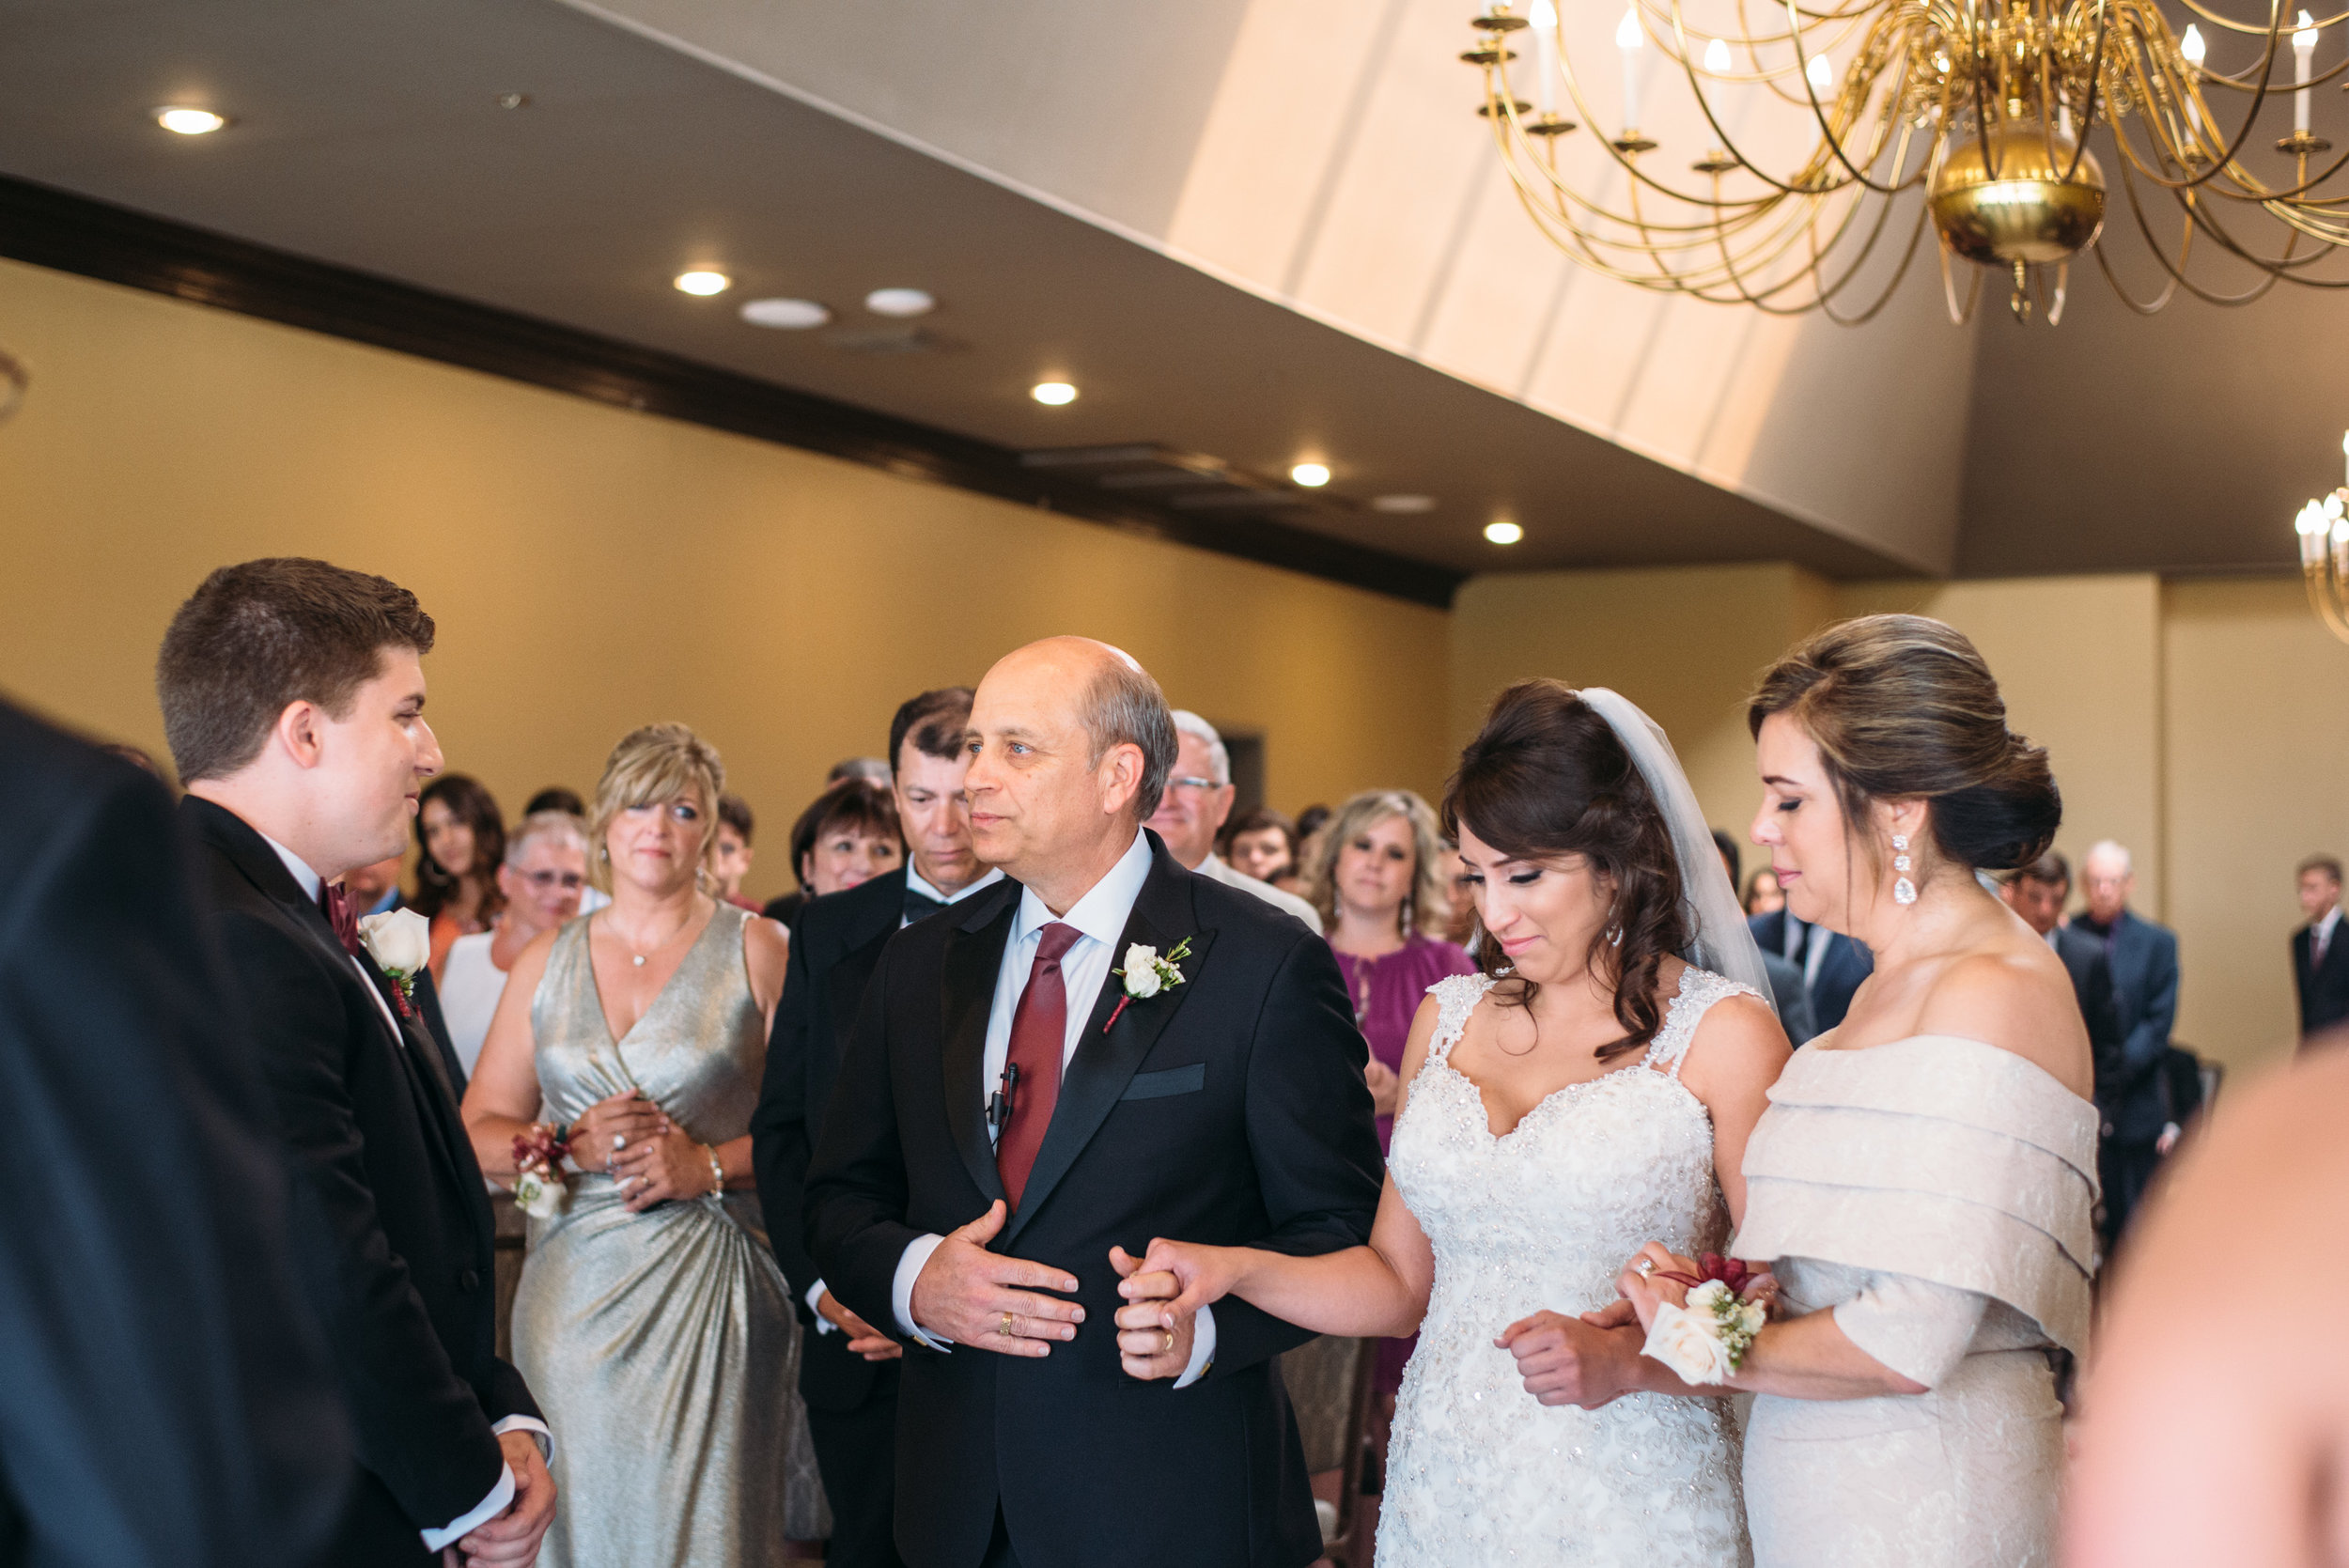 PhillipsEventCenter-AggieWedding-CollegeStationPhotographer_31.jpg